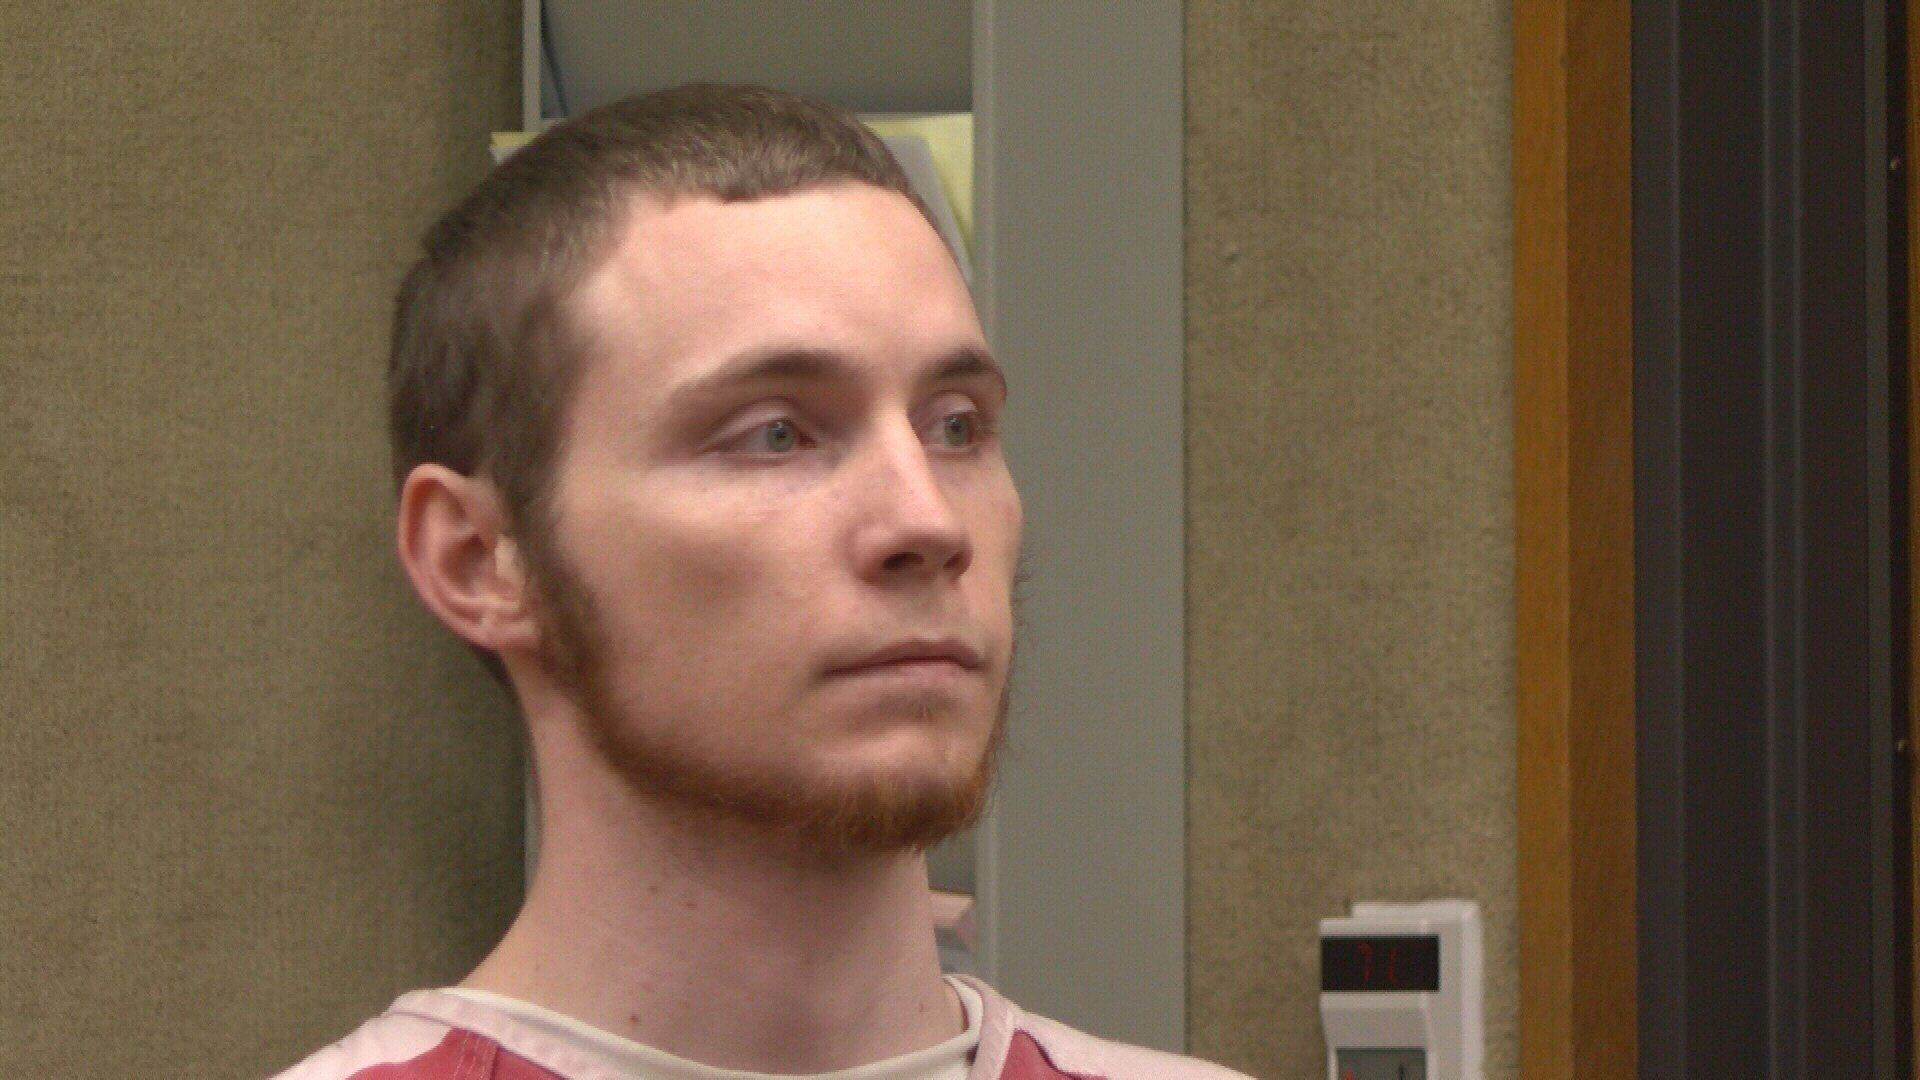 William Joel Schonberger appears in court for his arraignment after being charged with murder in connection with his father's death.  (KSBY)